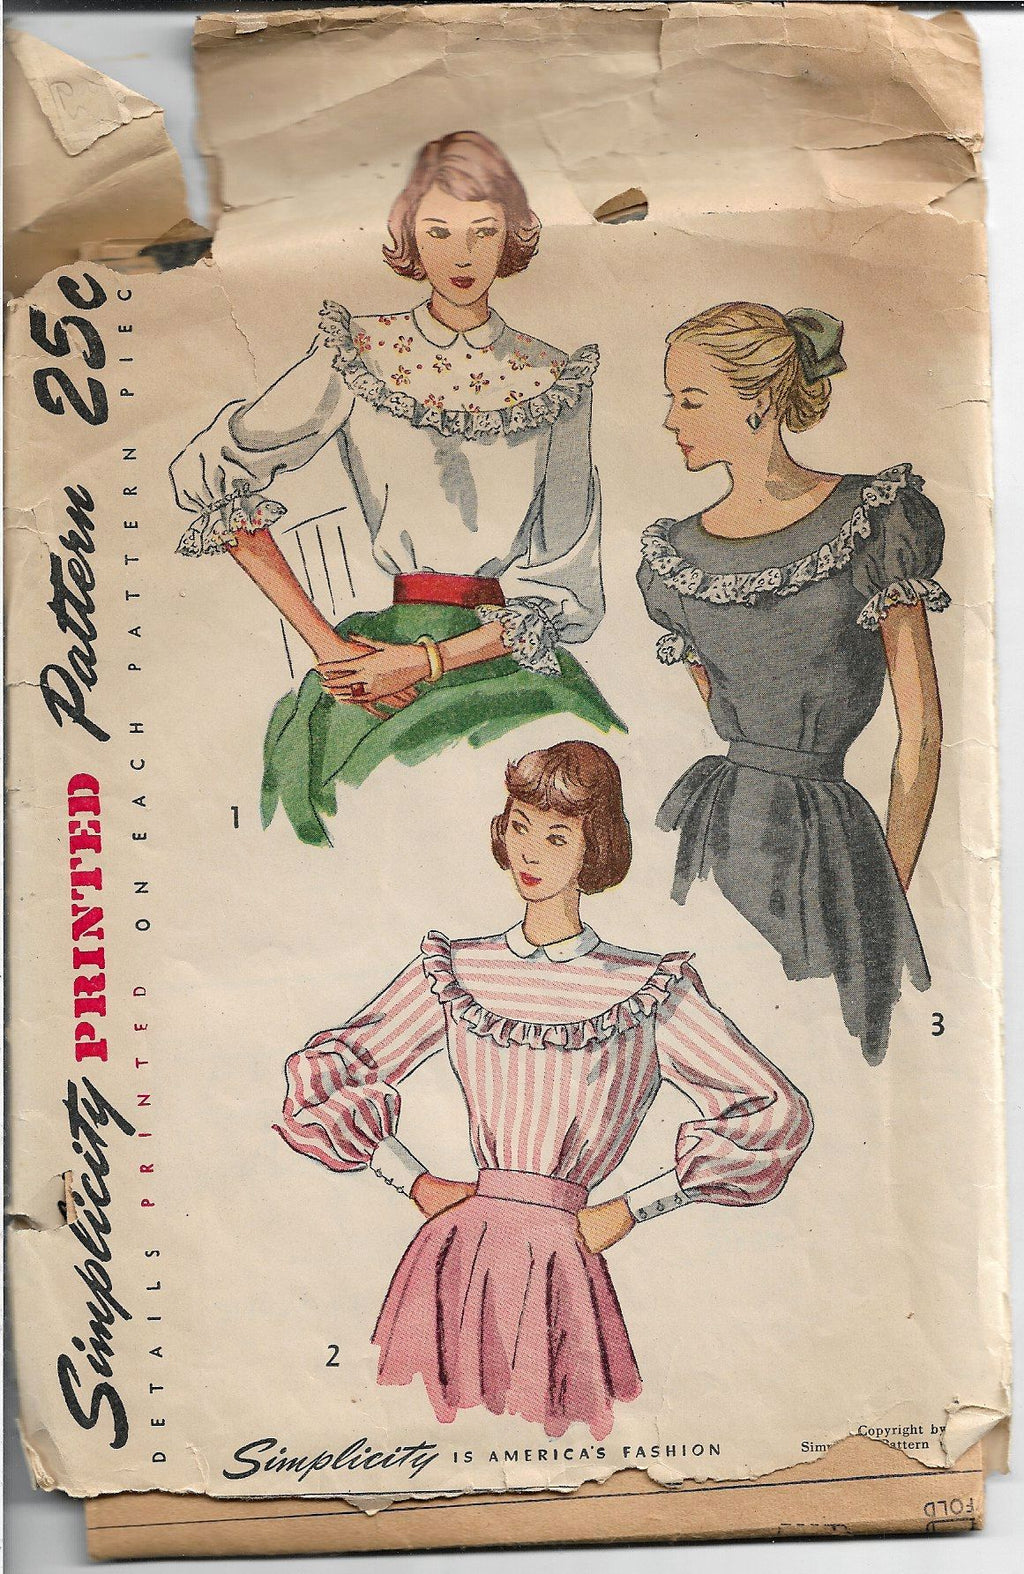 Simplicity 2483 Ladies Back Buttoned Blouse Vintage Sewing Pattern 1940s - VintageStitching - Vintage Sewing Patterns